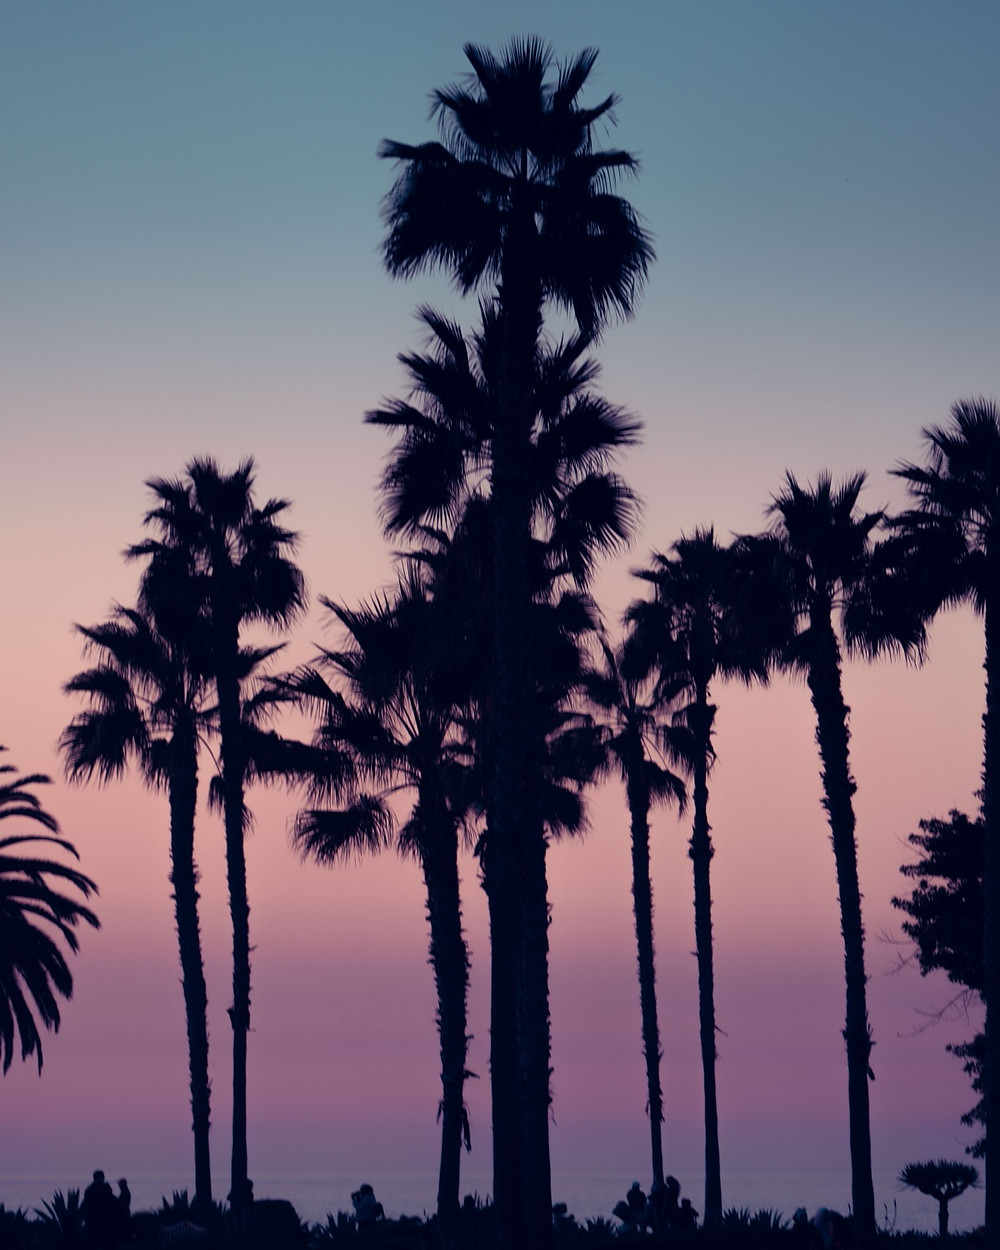 Colorful palm tree gradient sky behind a set of silhouette palm trees